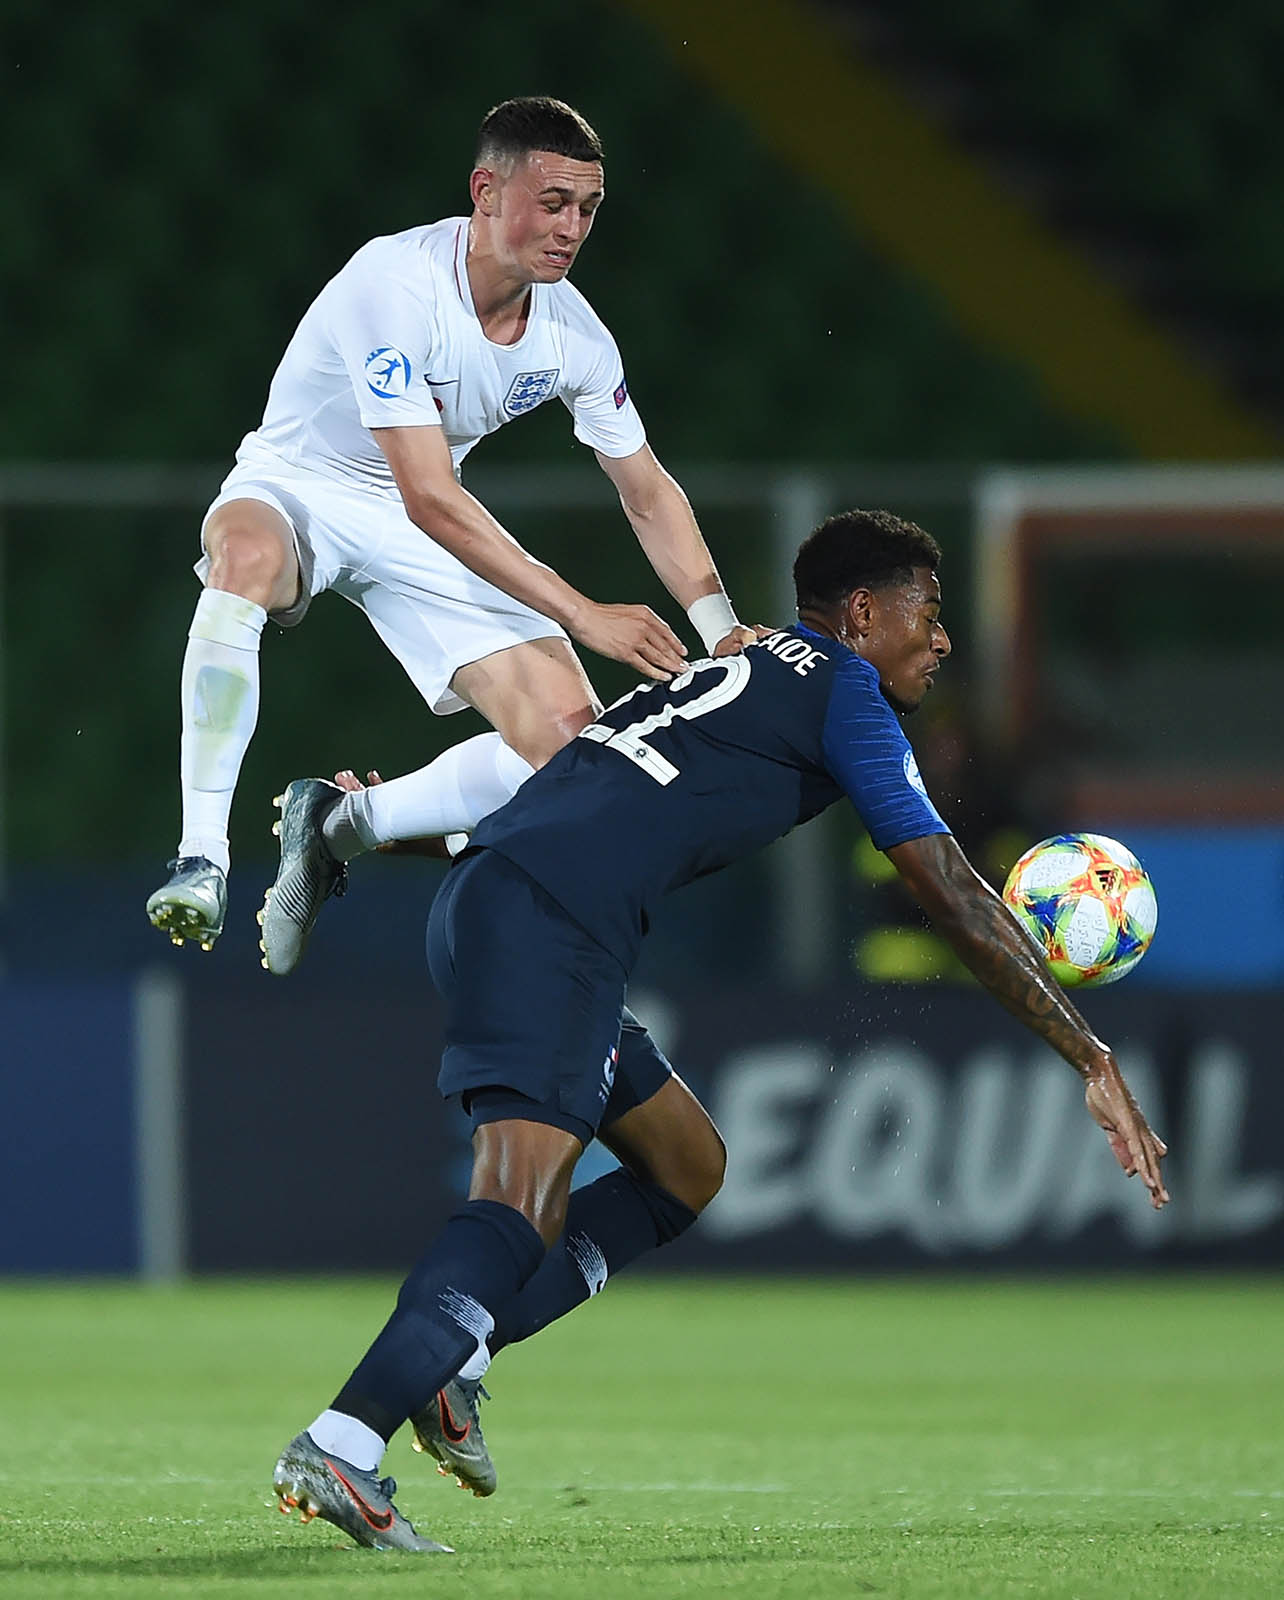 England v France: Group C - 2019 UEFA U-21 Championship